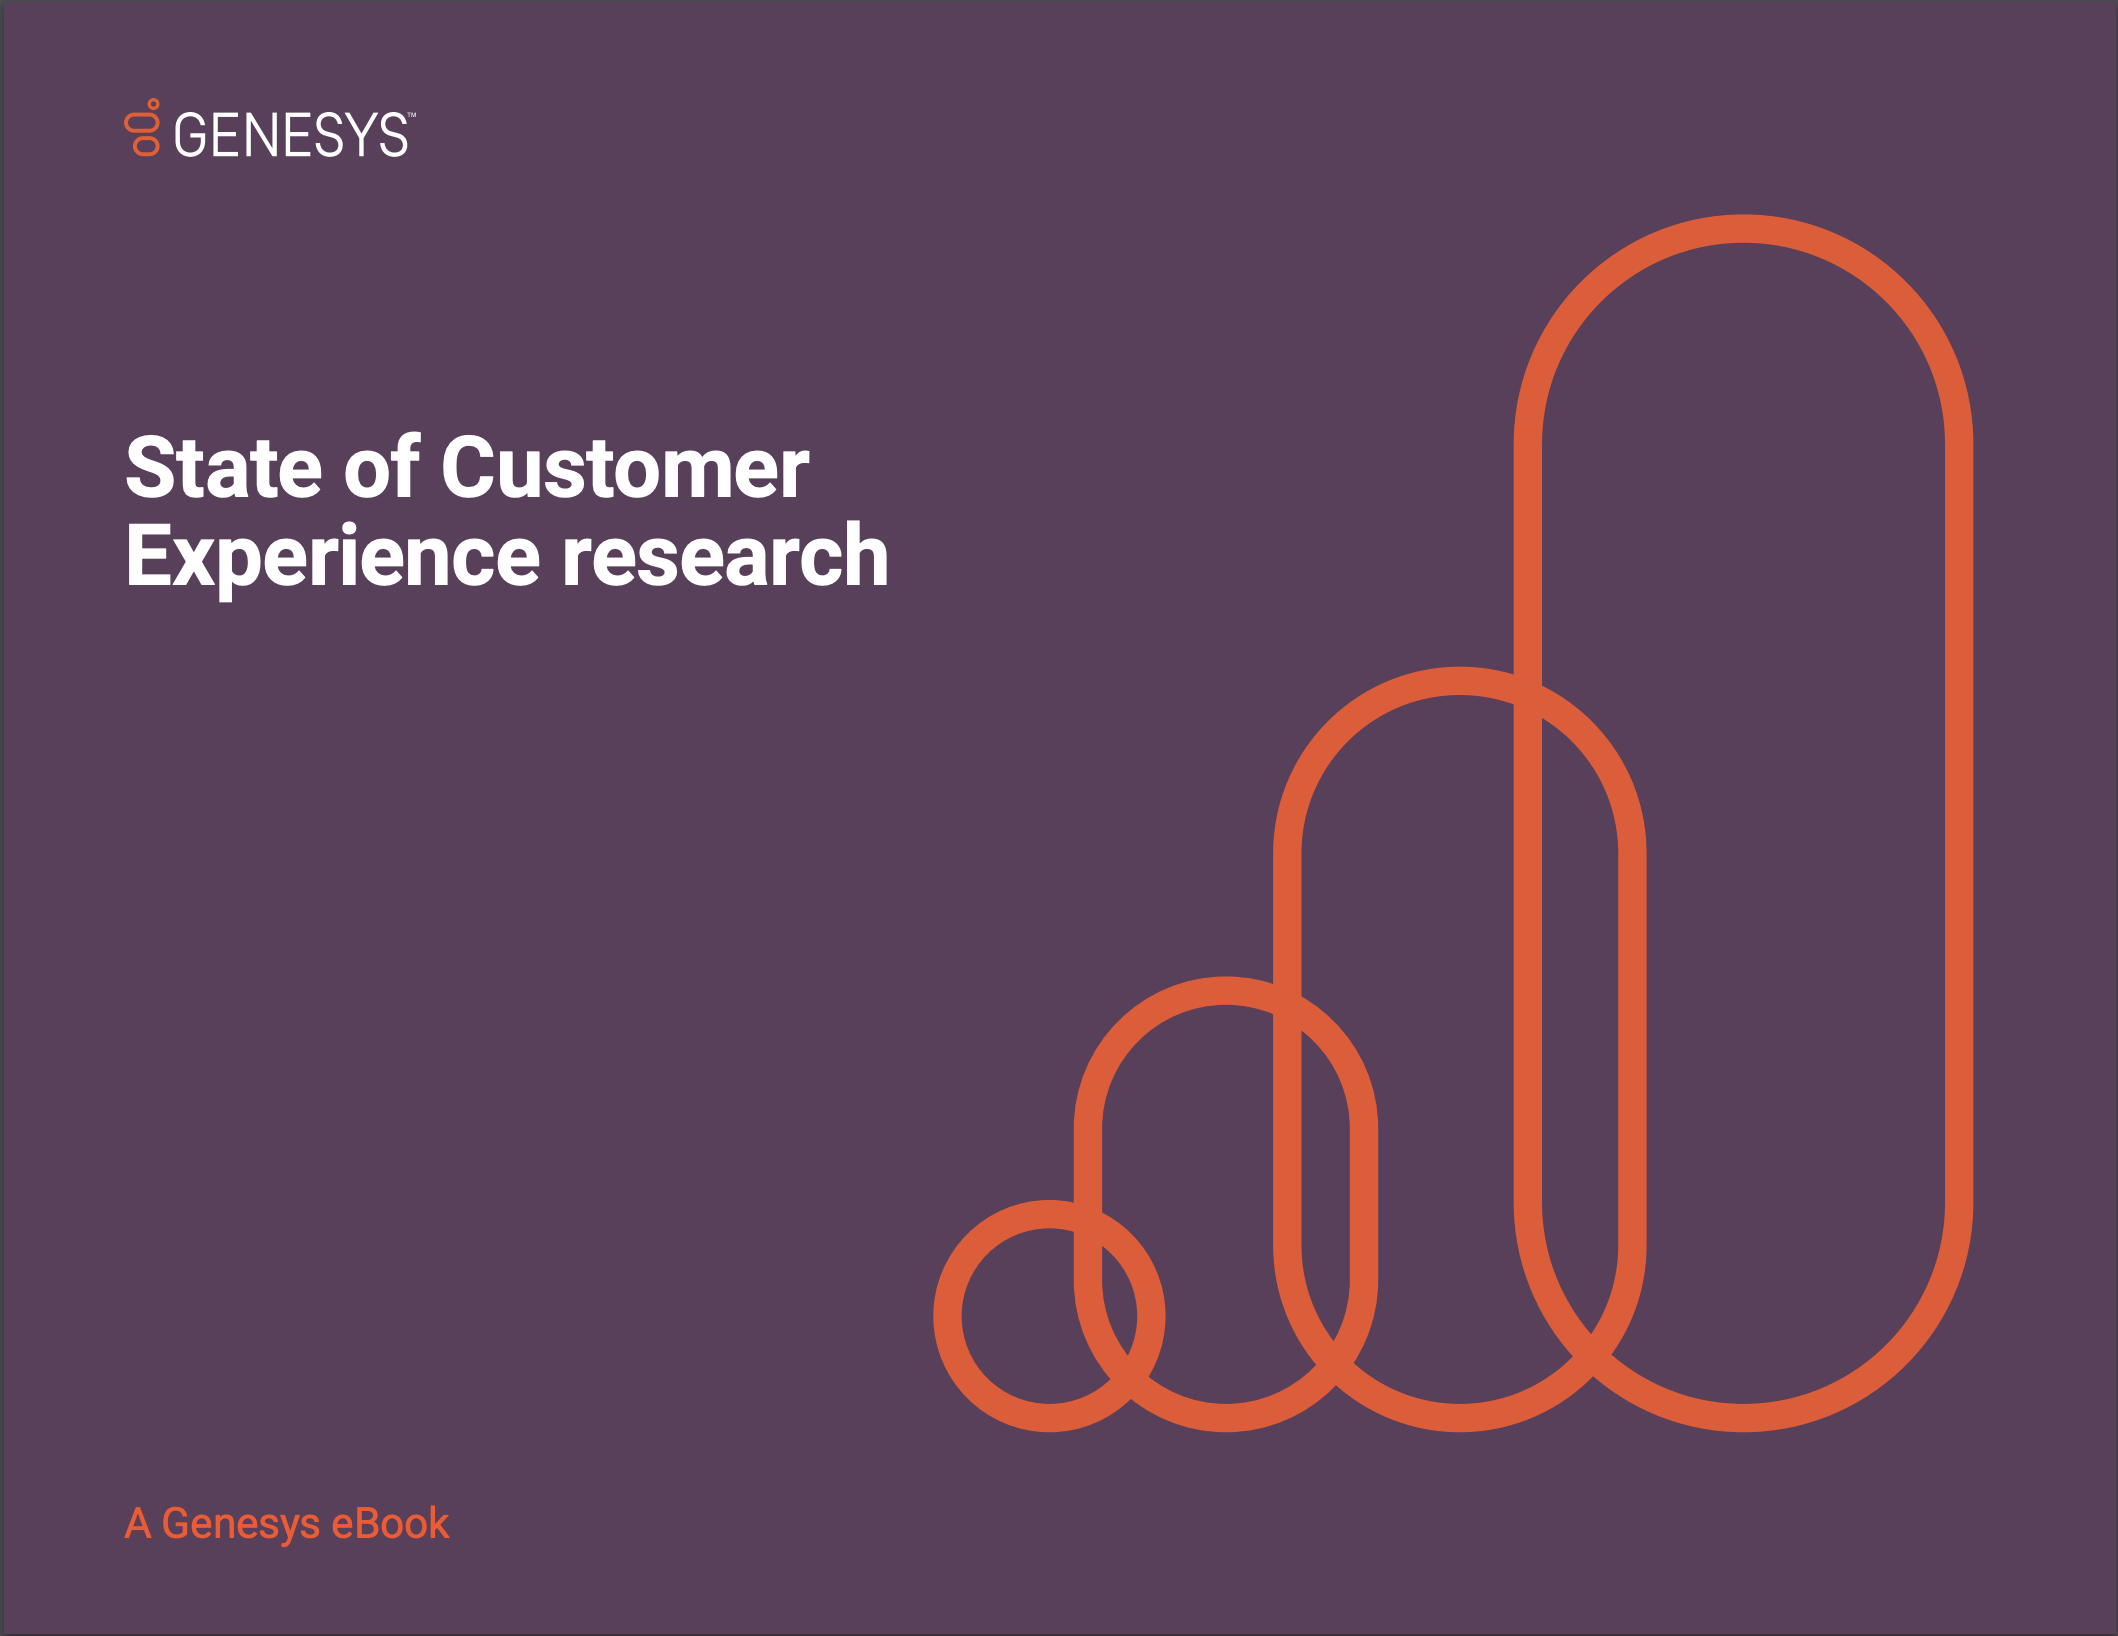 2019 - GENESYS - State of Customer Experience research